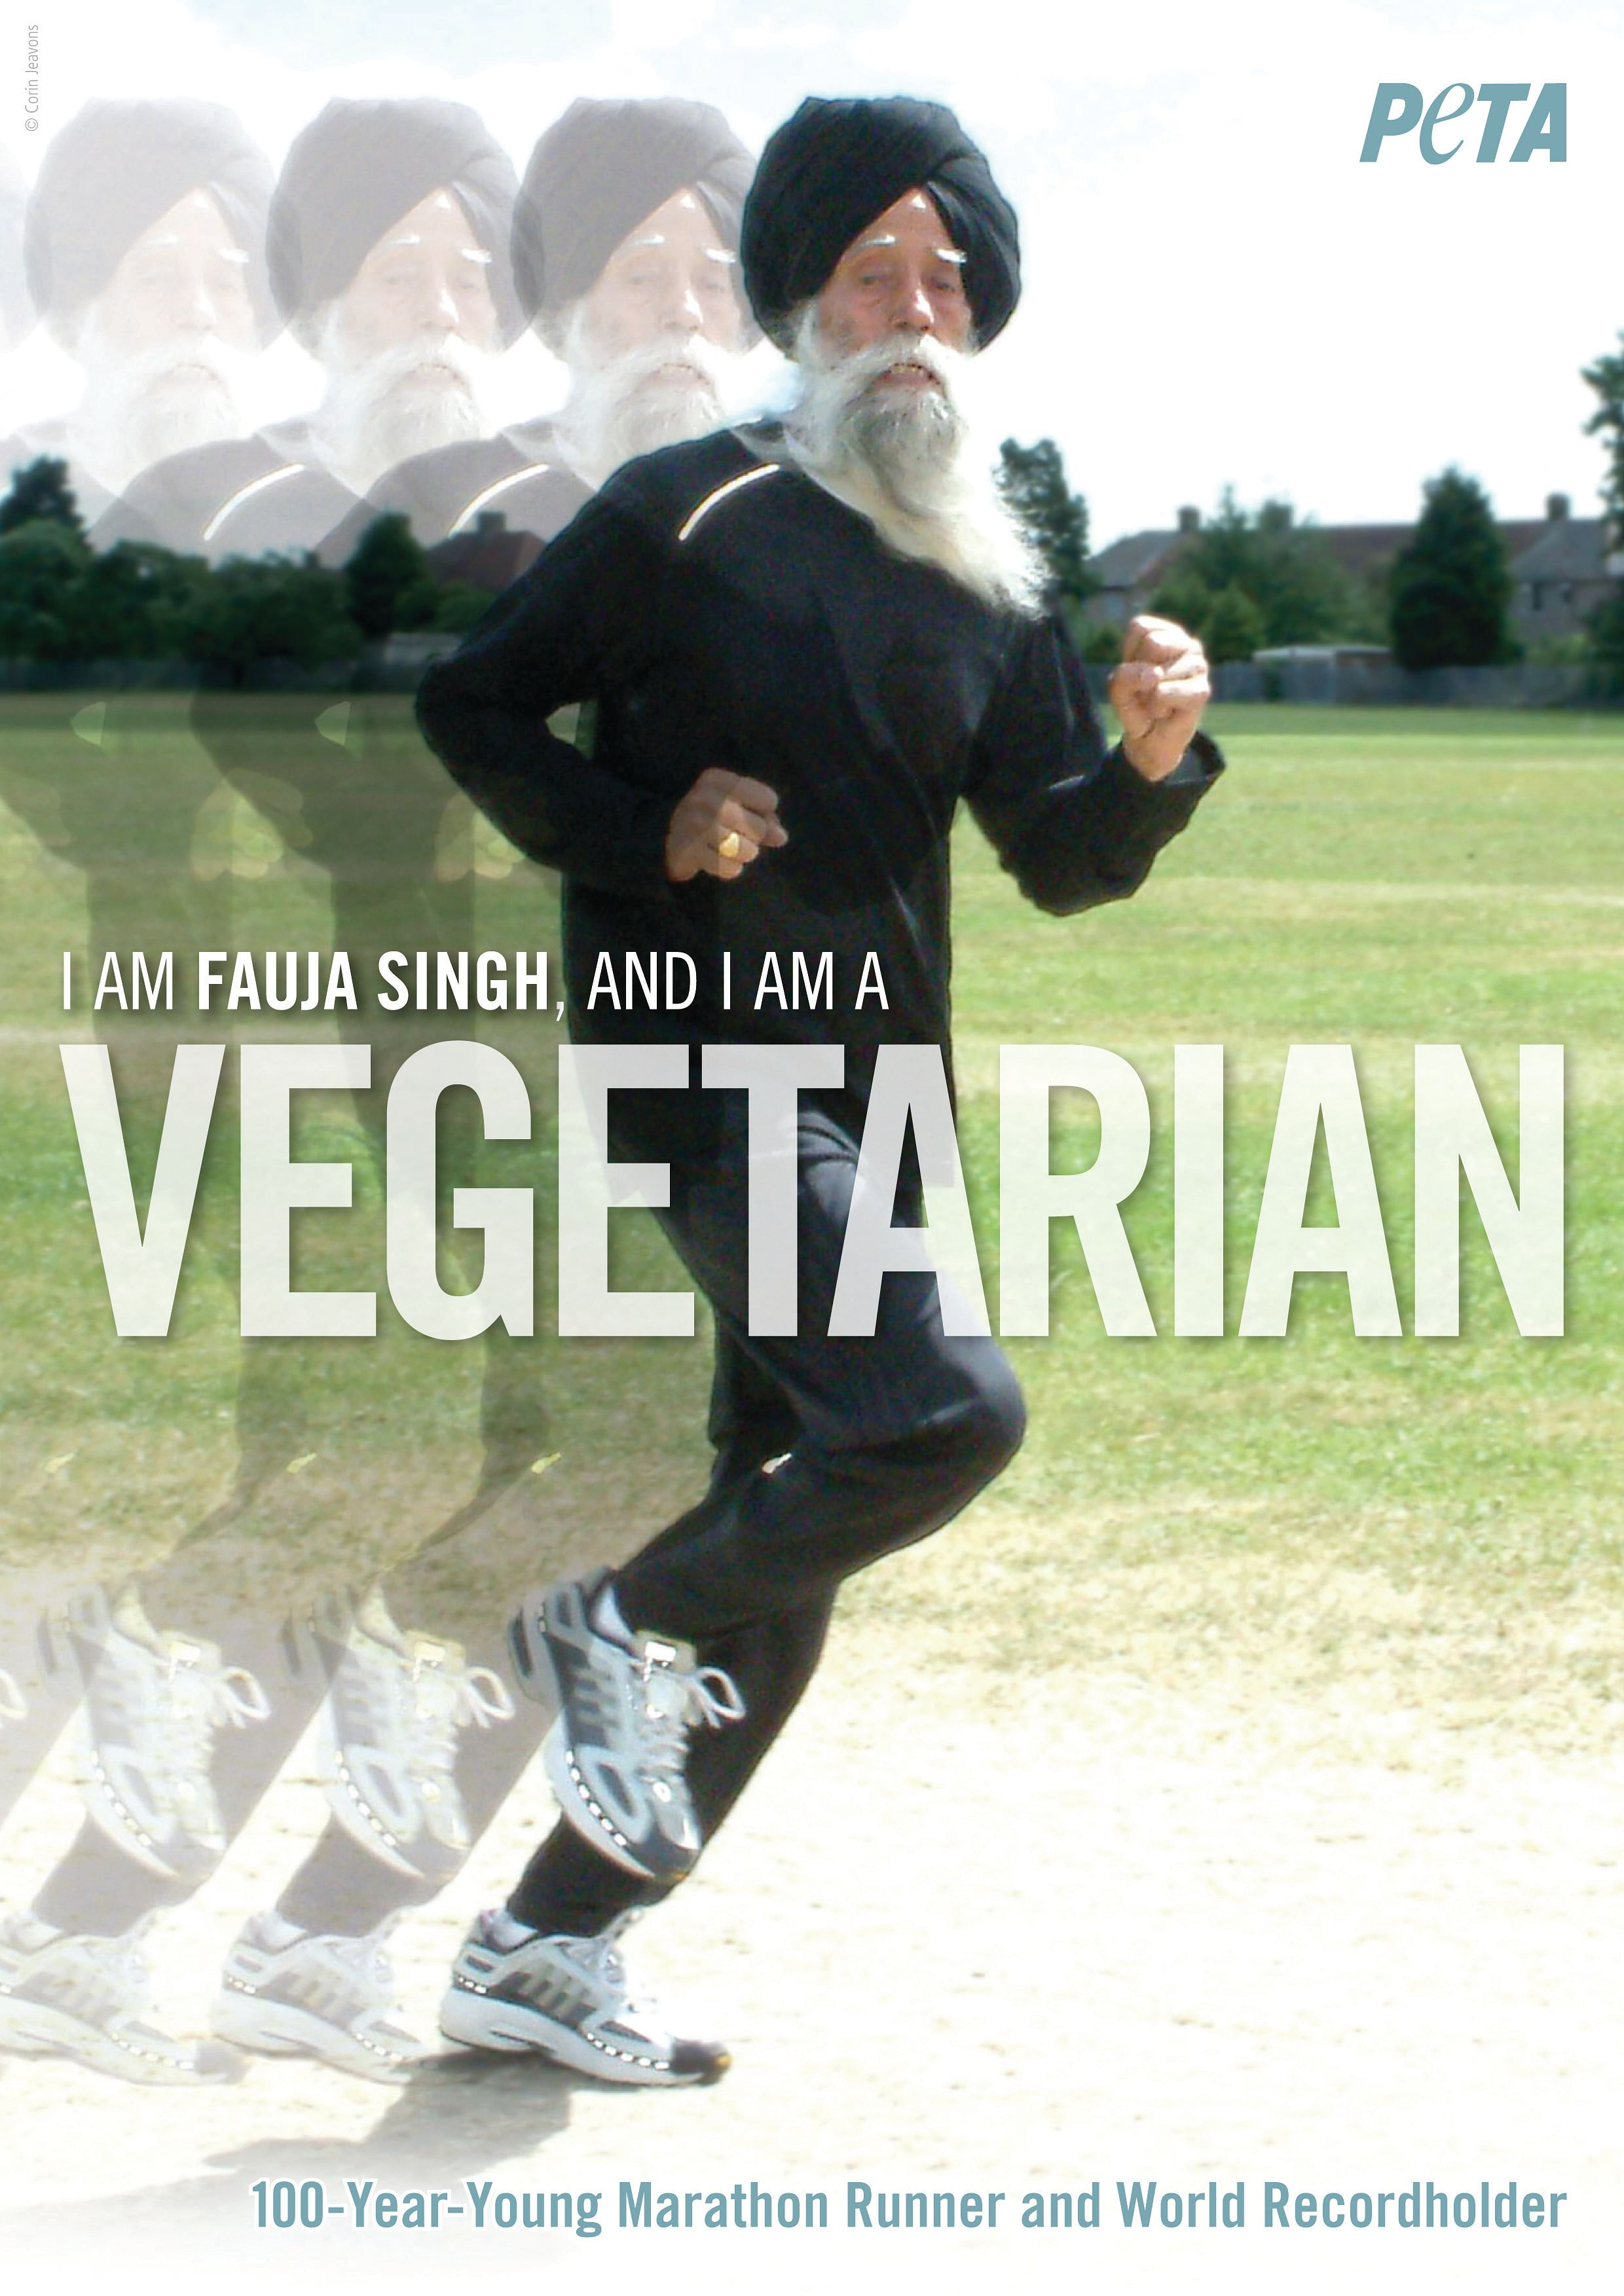 I-am-Fauja-Singh-and-I-am-a-Vegetarian PETA AD